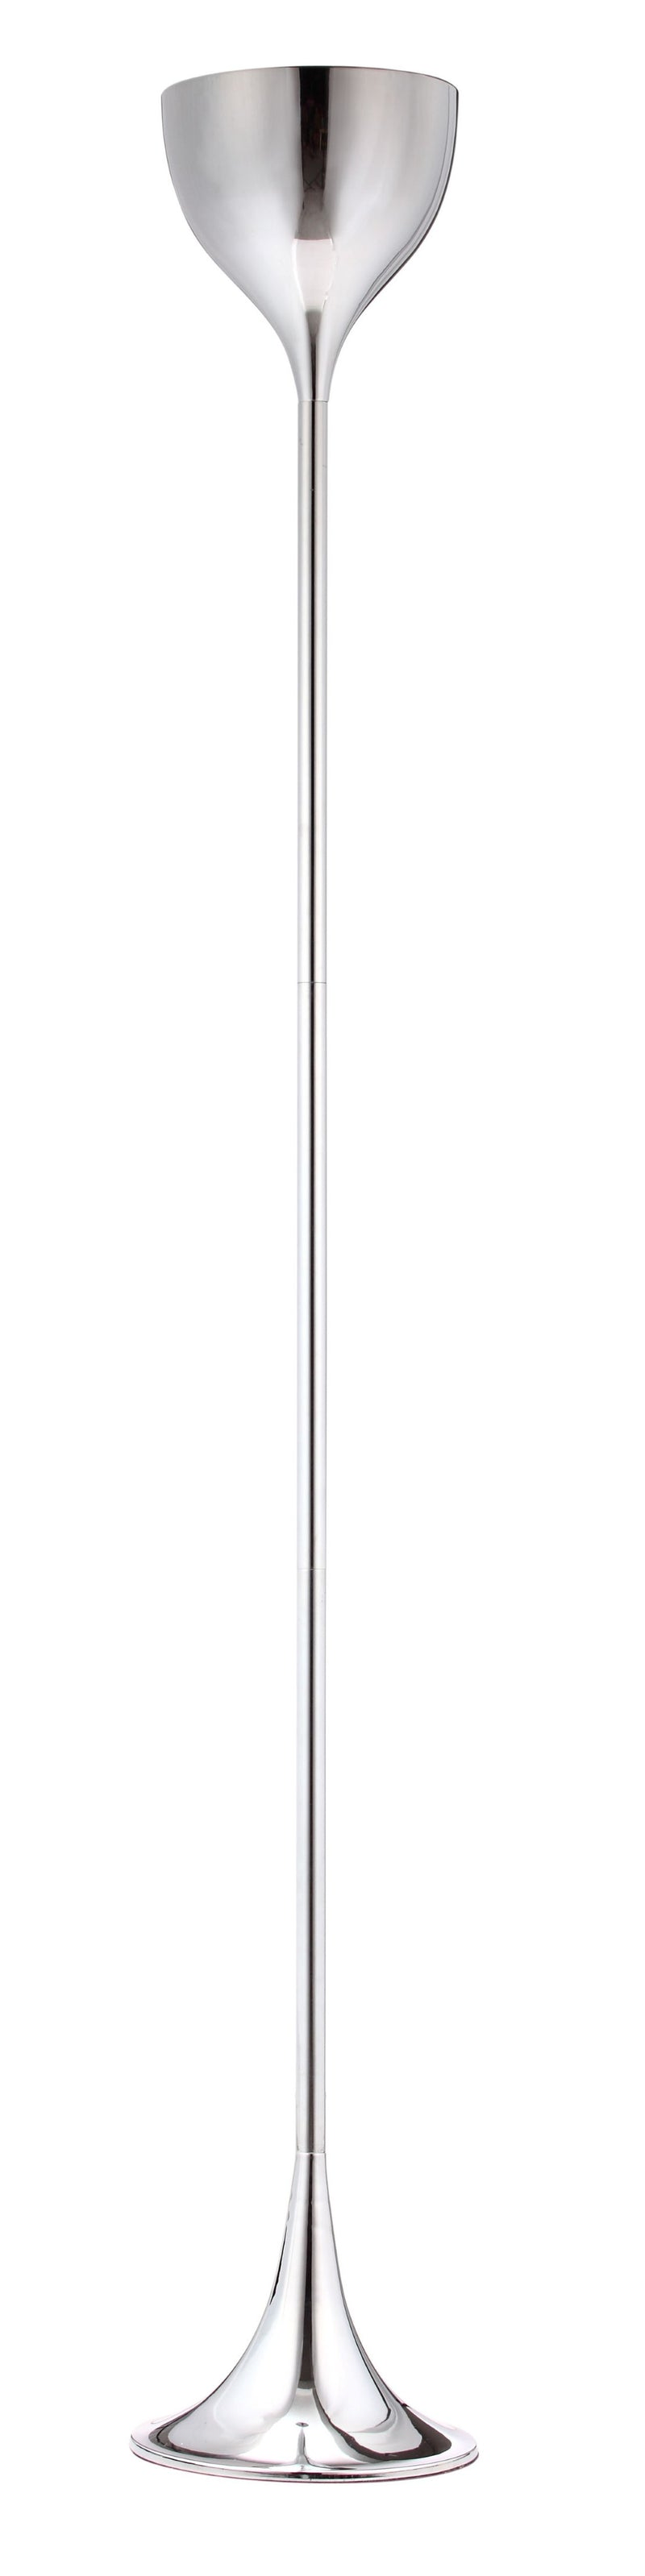 Neutrino Floor Lamp (Chrome)